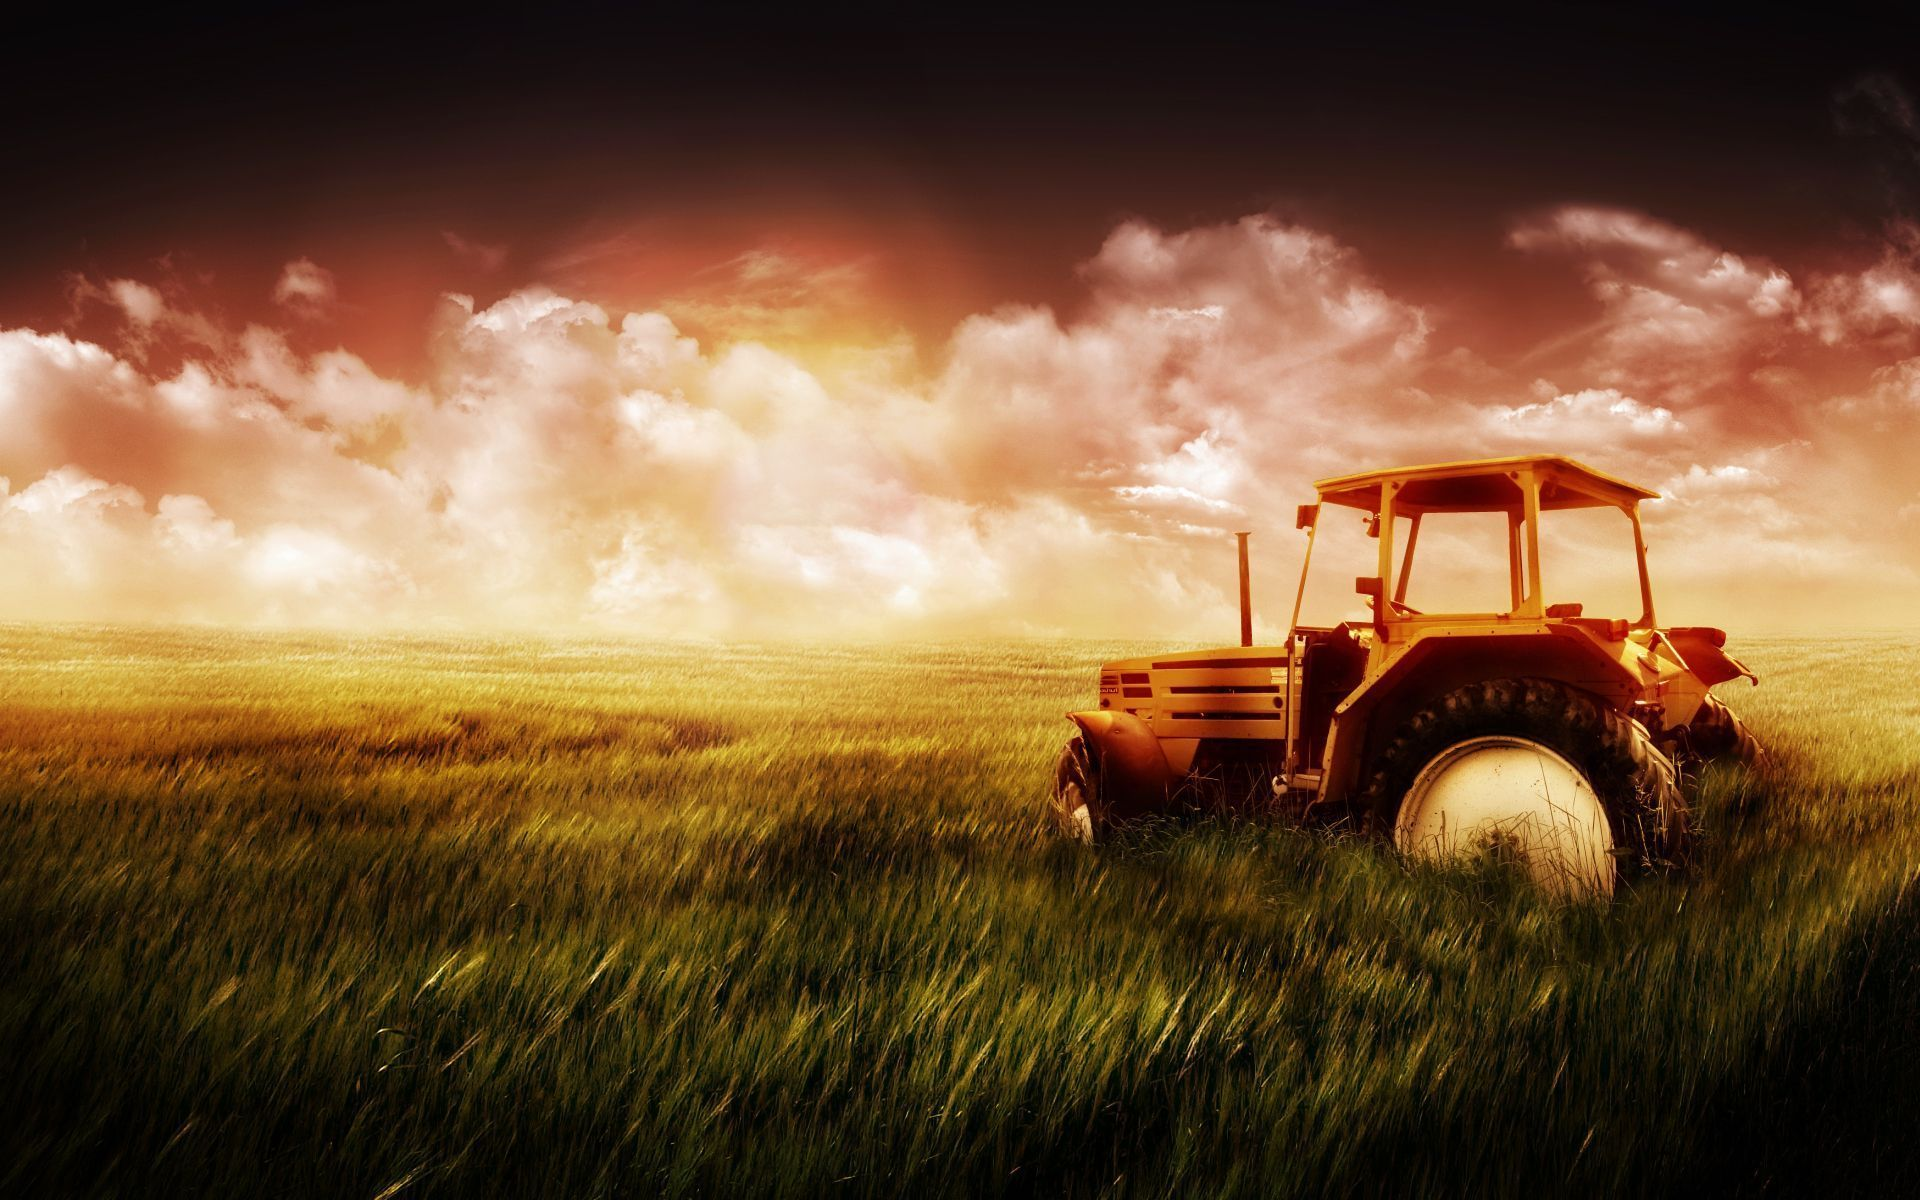 Old Tractor In Field , HD Wallpaper & Backgrounds